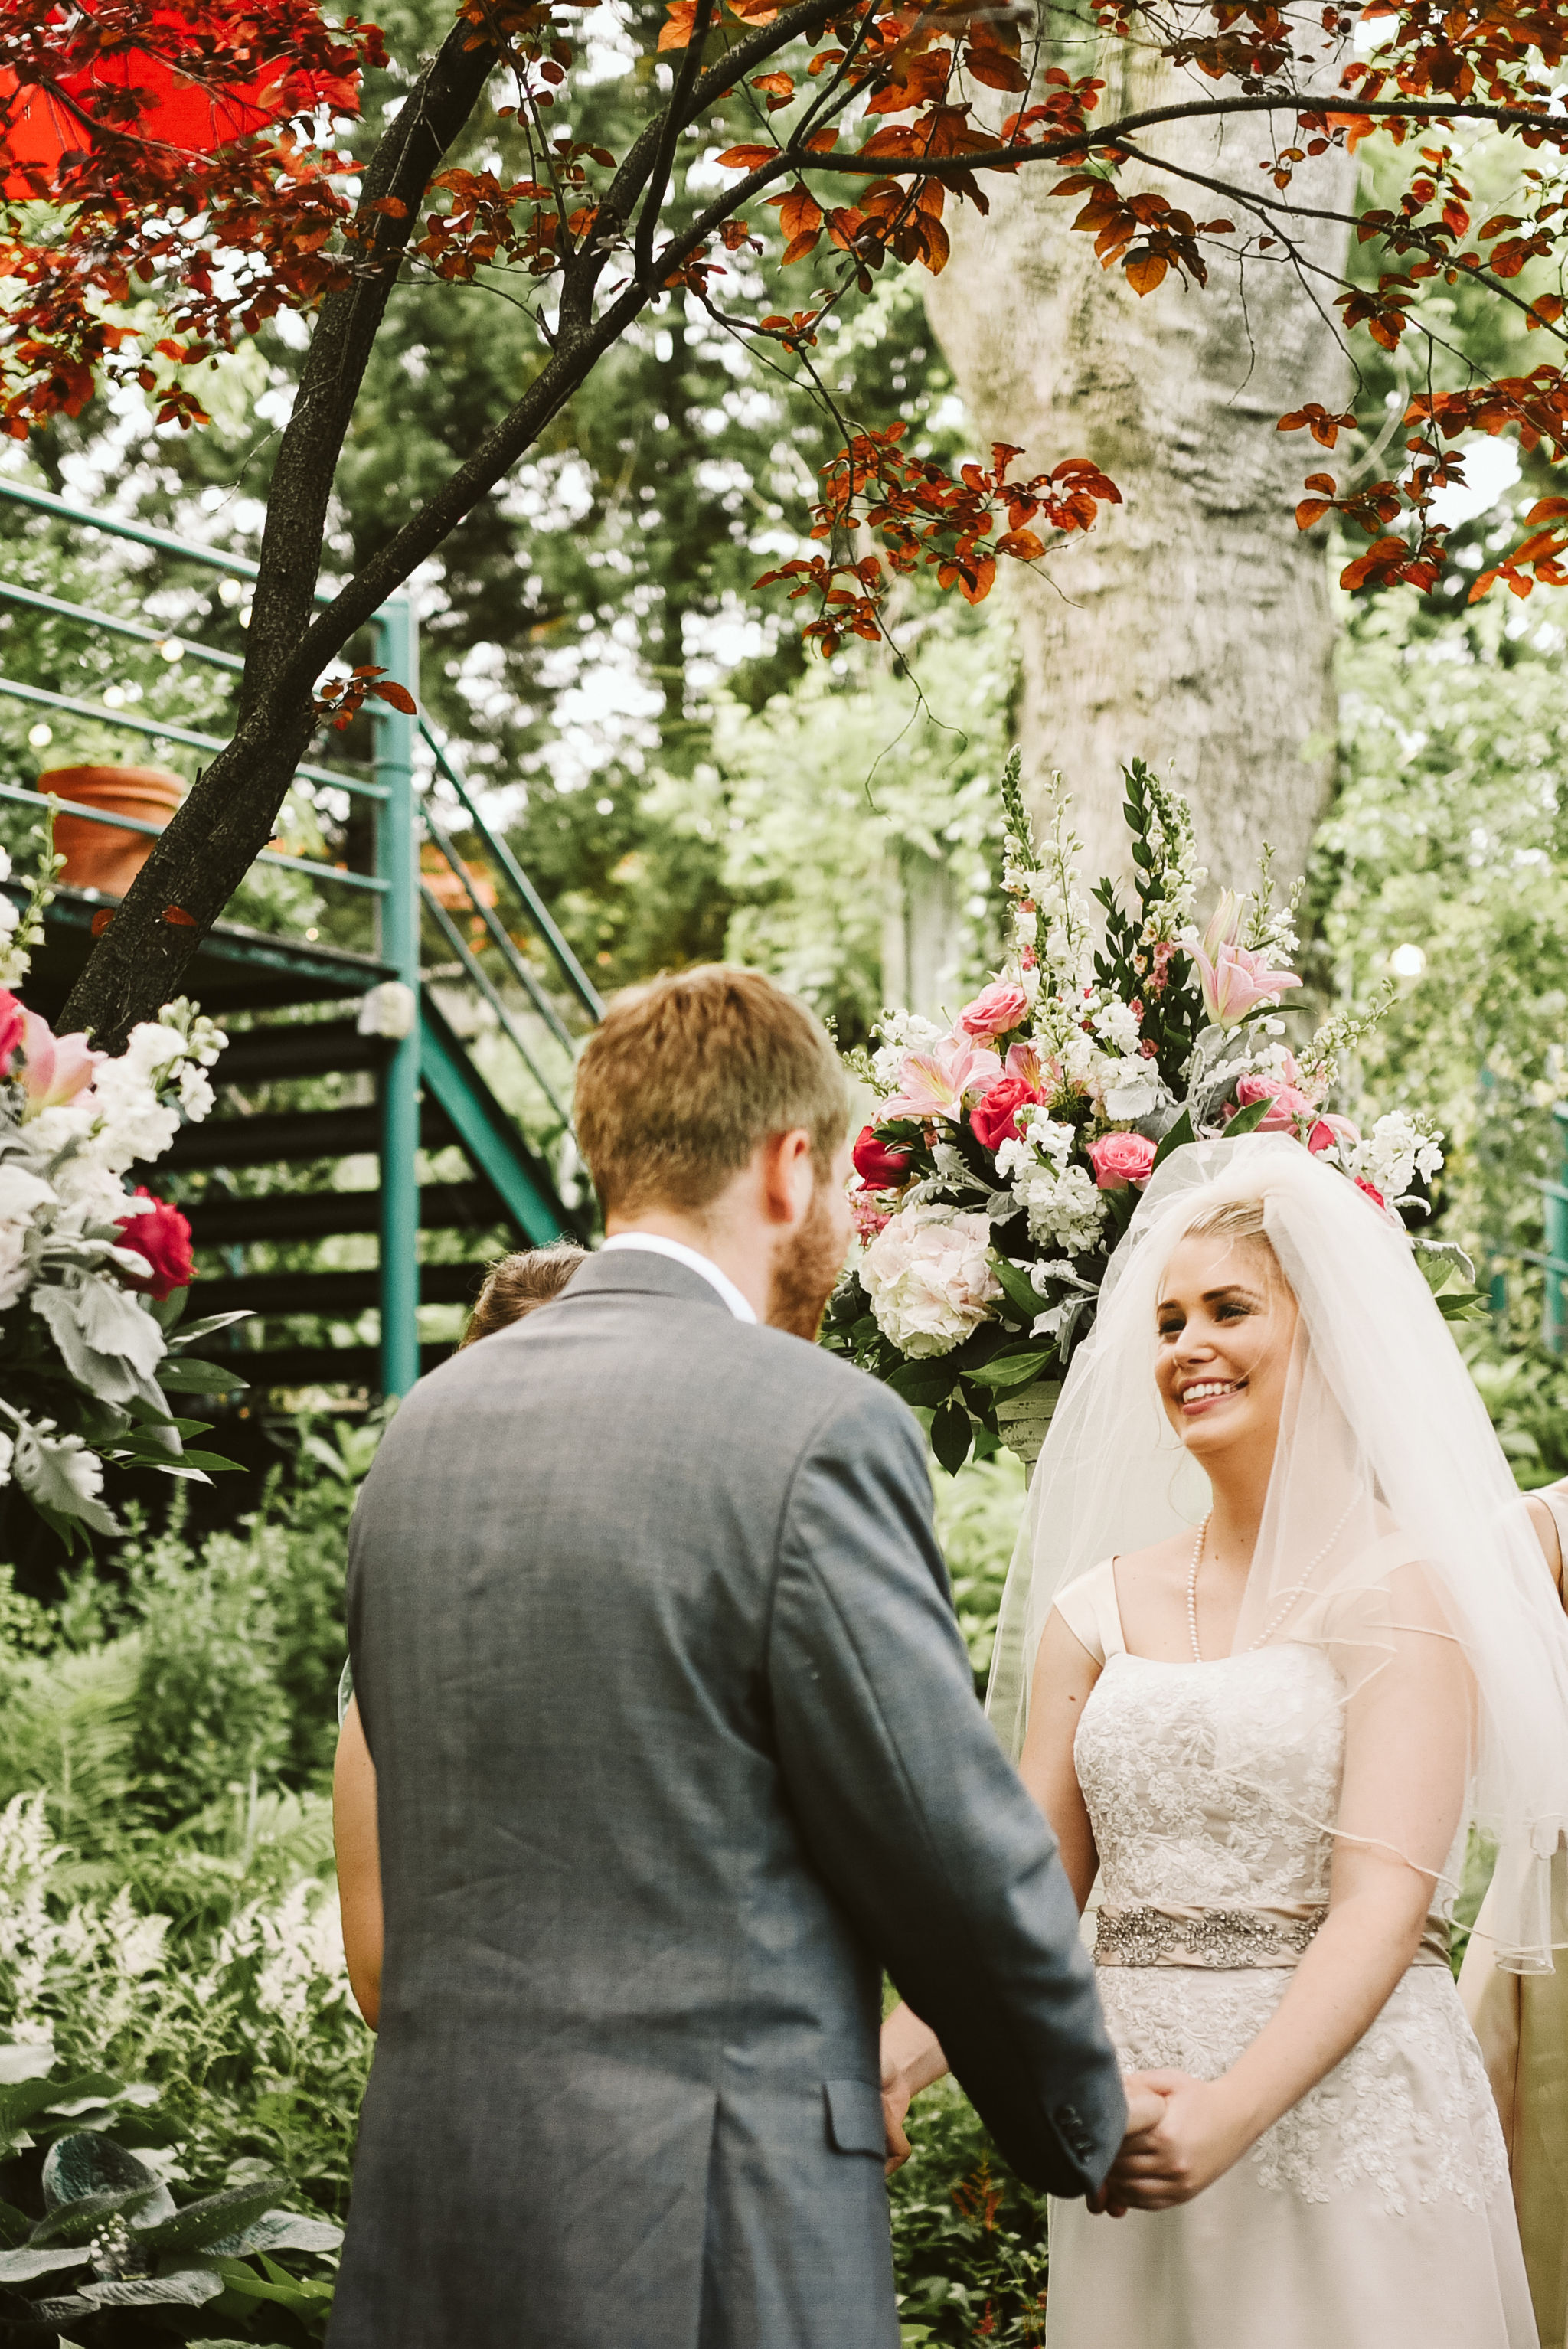 Hampden, Baltimore, Maryland Wedding Photographer, Garden Wedding, Classic, DIY, Romantic, Bride and Groom Smiling at Each Other During Ceremony